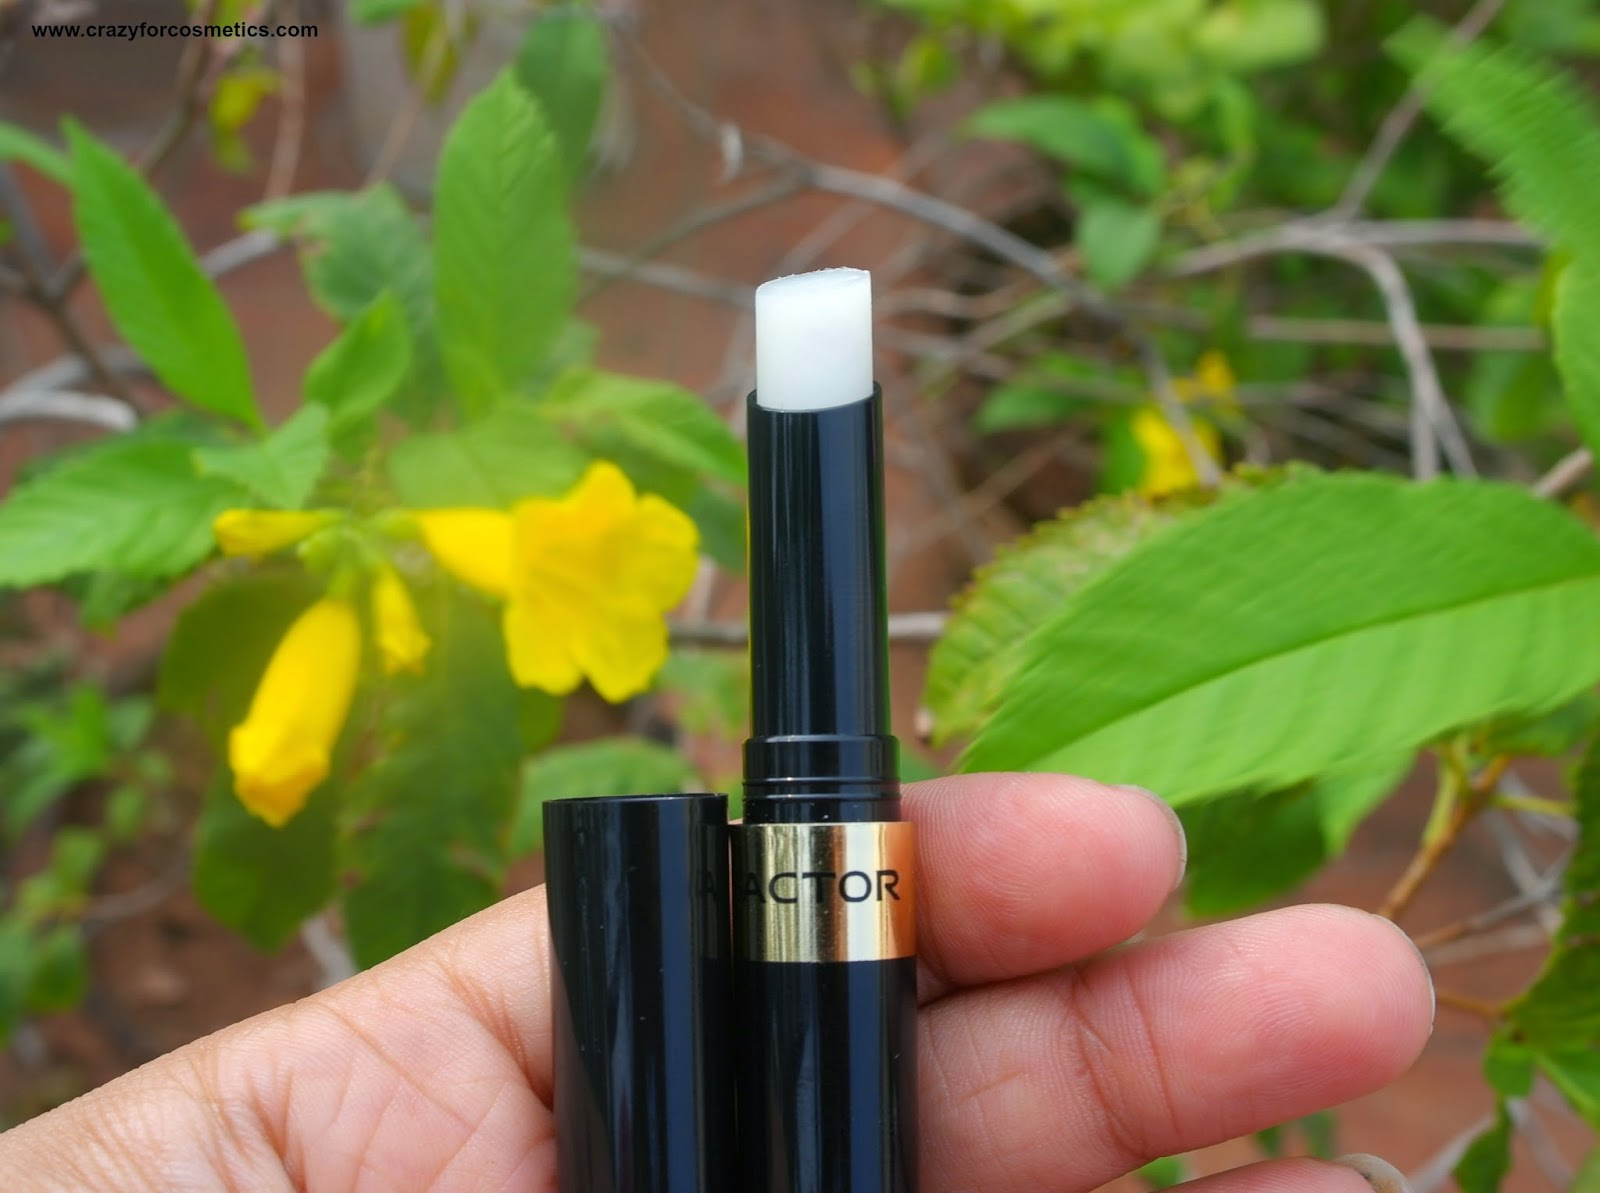 Max factor Lipfinity Lip balm review